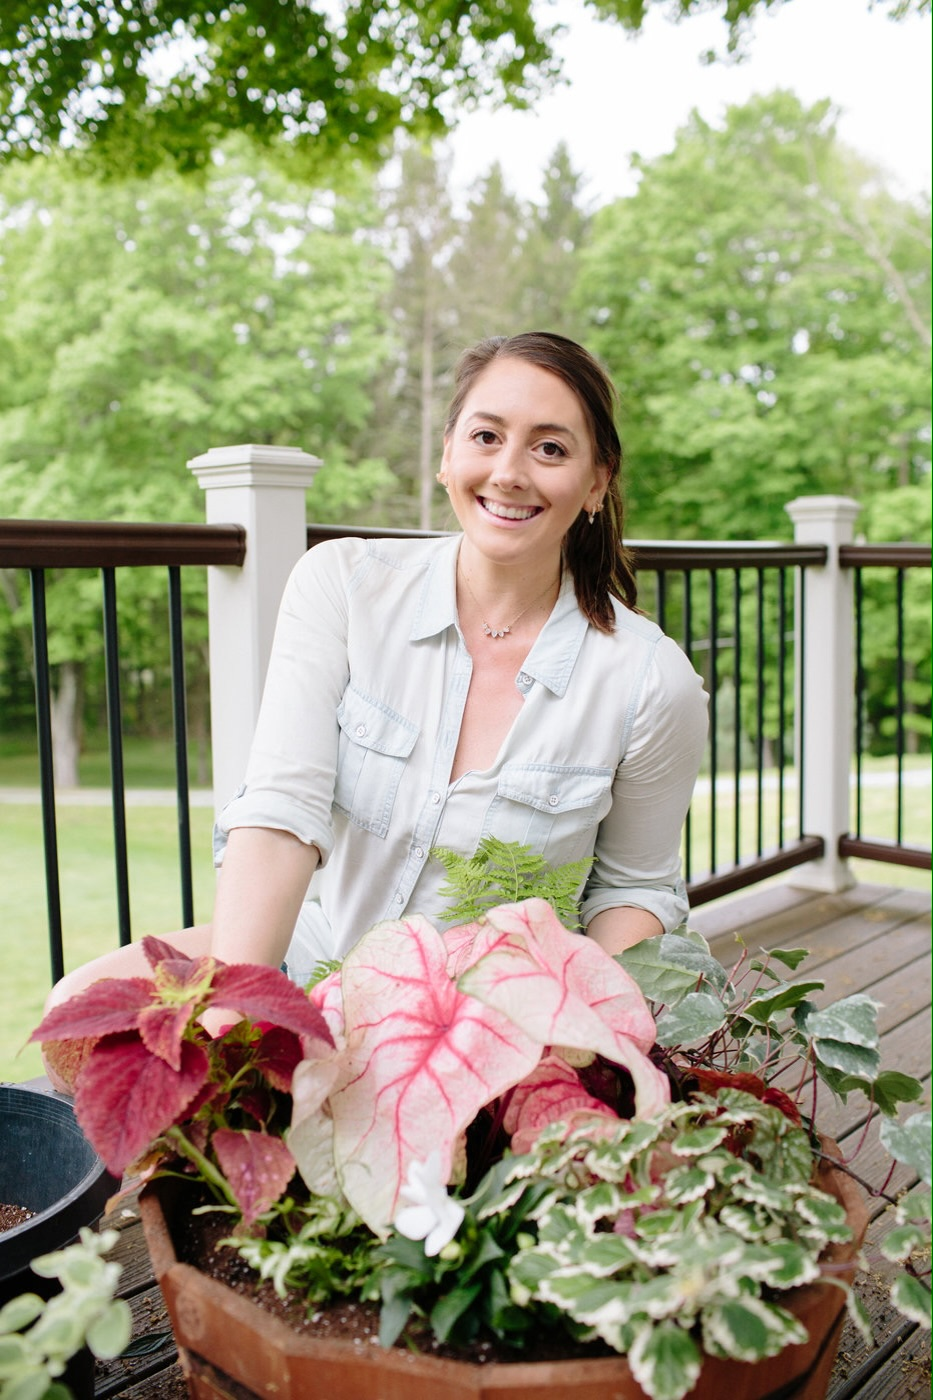 Christine Covino, experienced gardener sharing container gardening tips